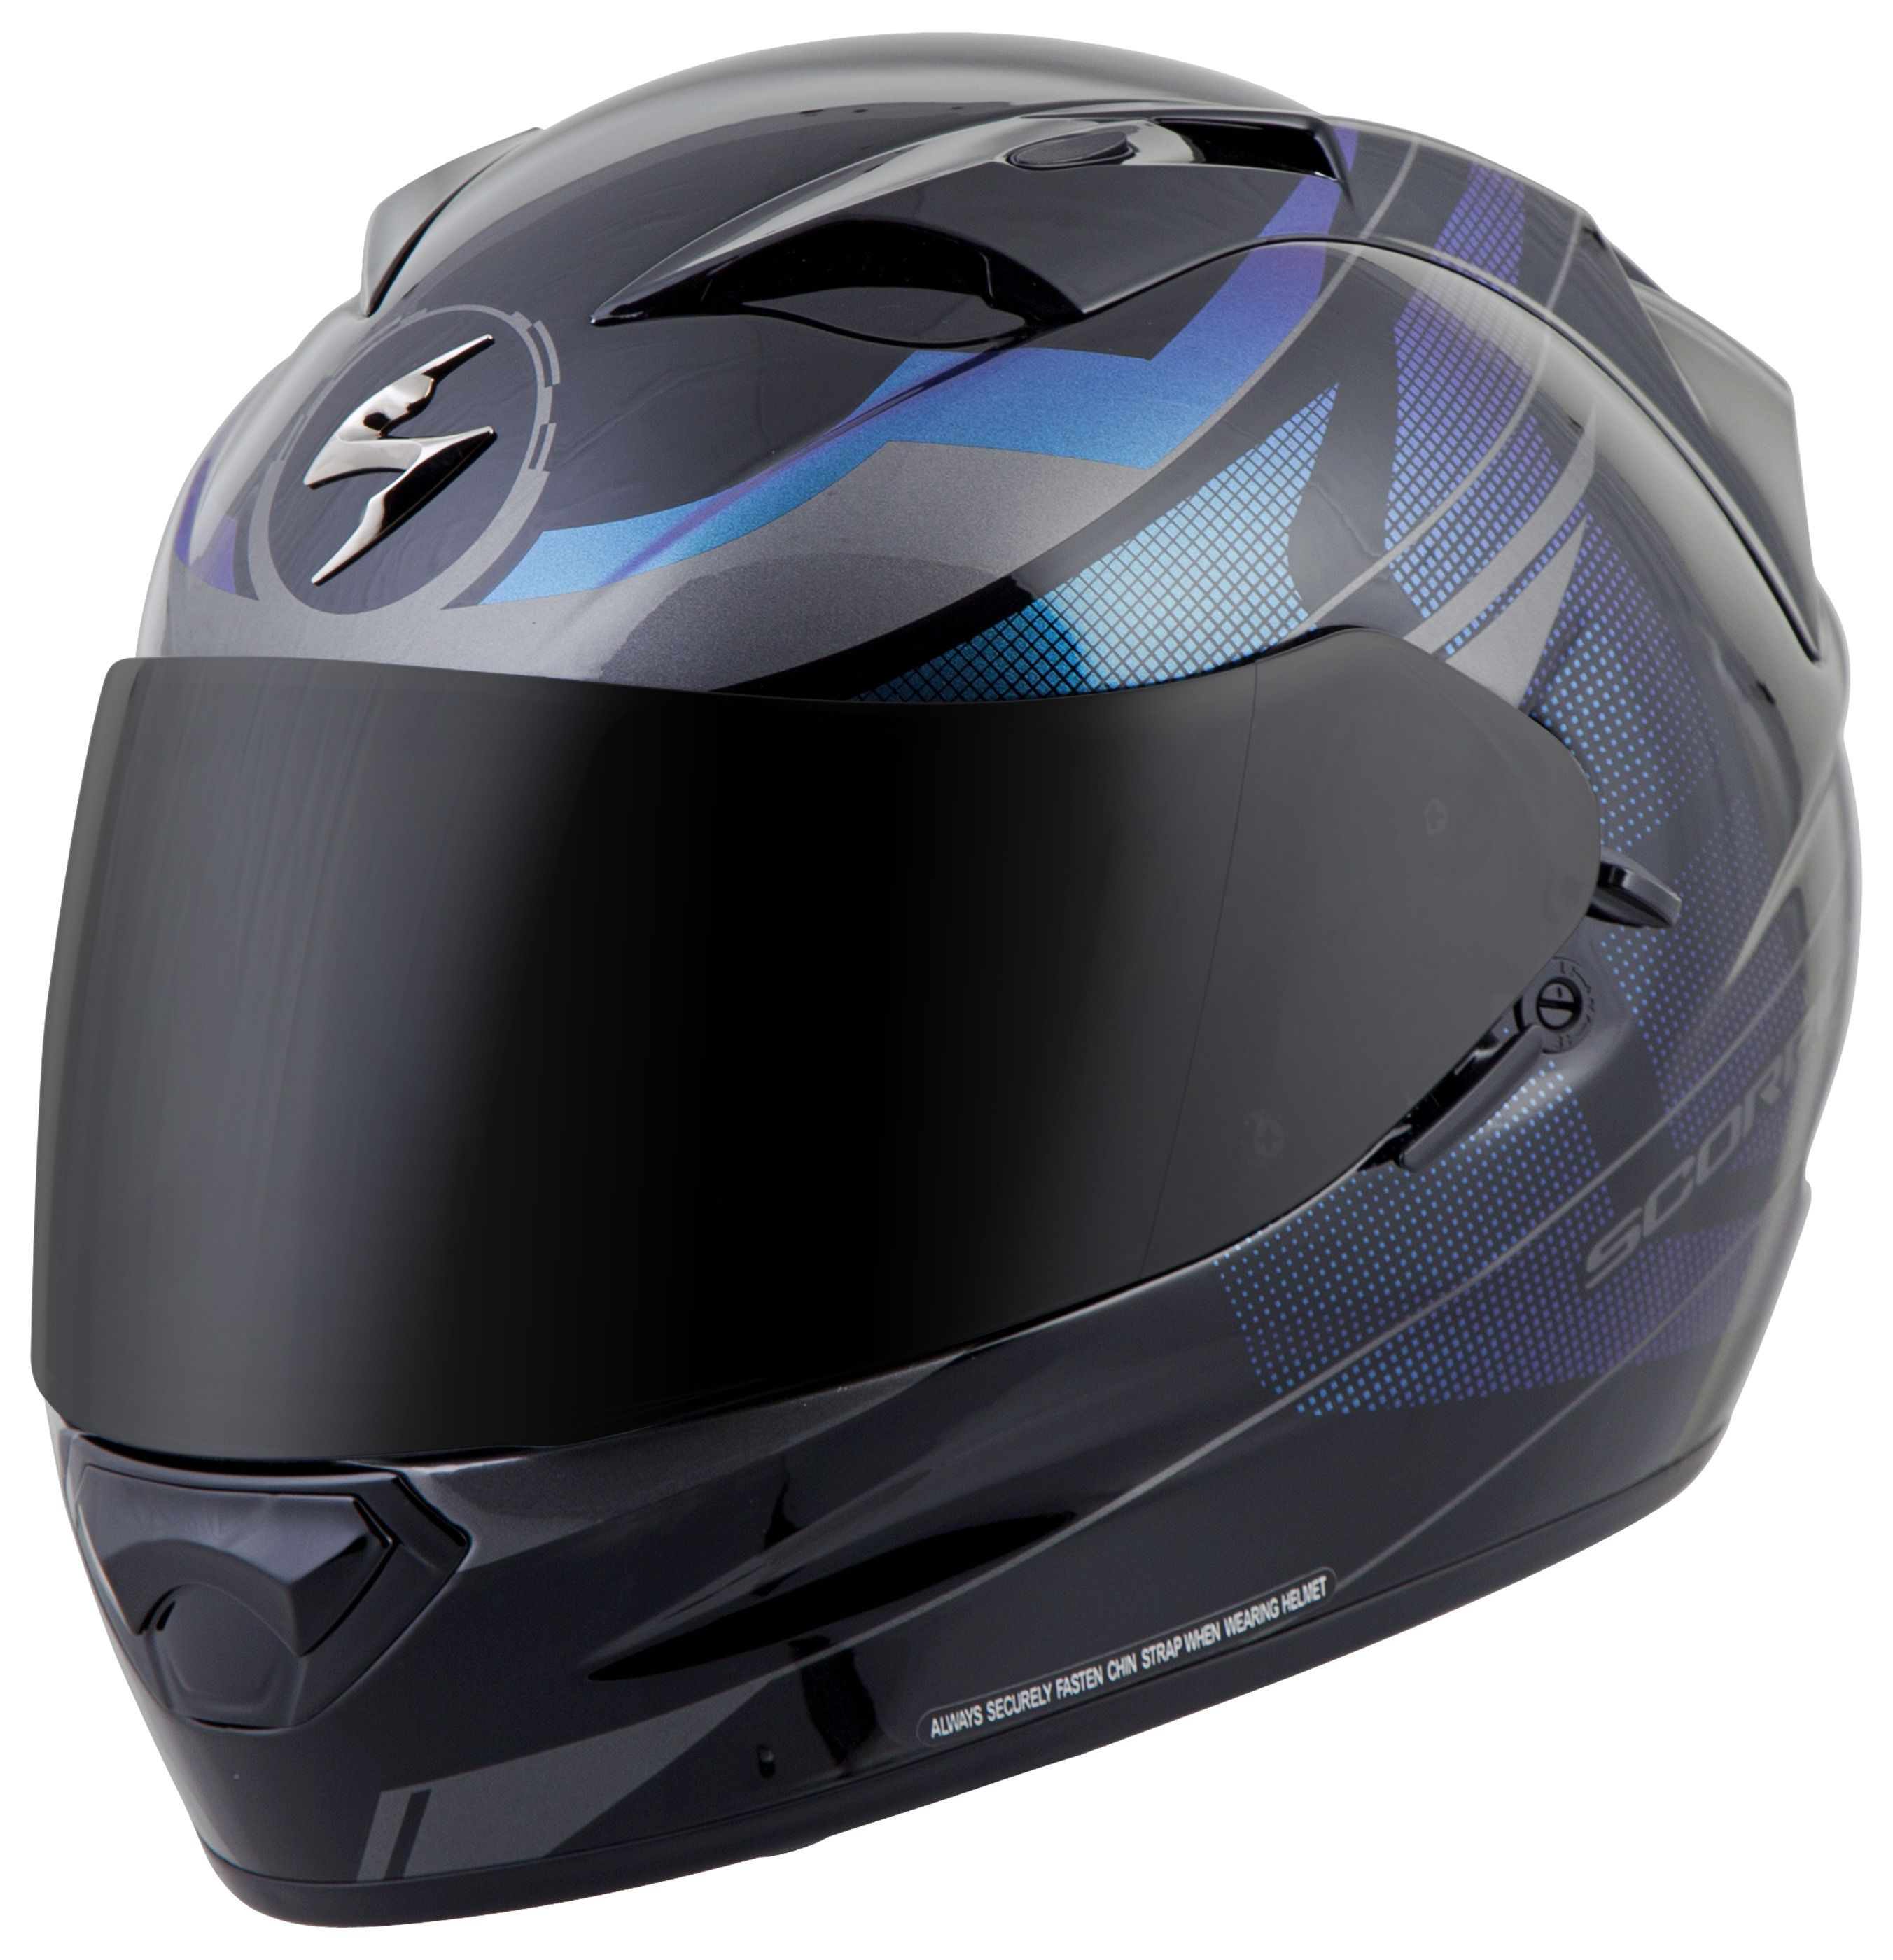 0a4d4c22 Scorpion EXO-T1200 Mainstay Helmet - Closeout - Cycle Gear